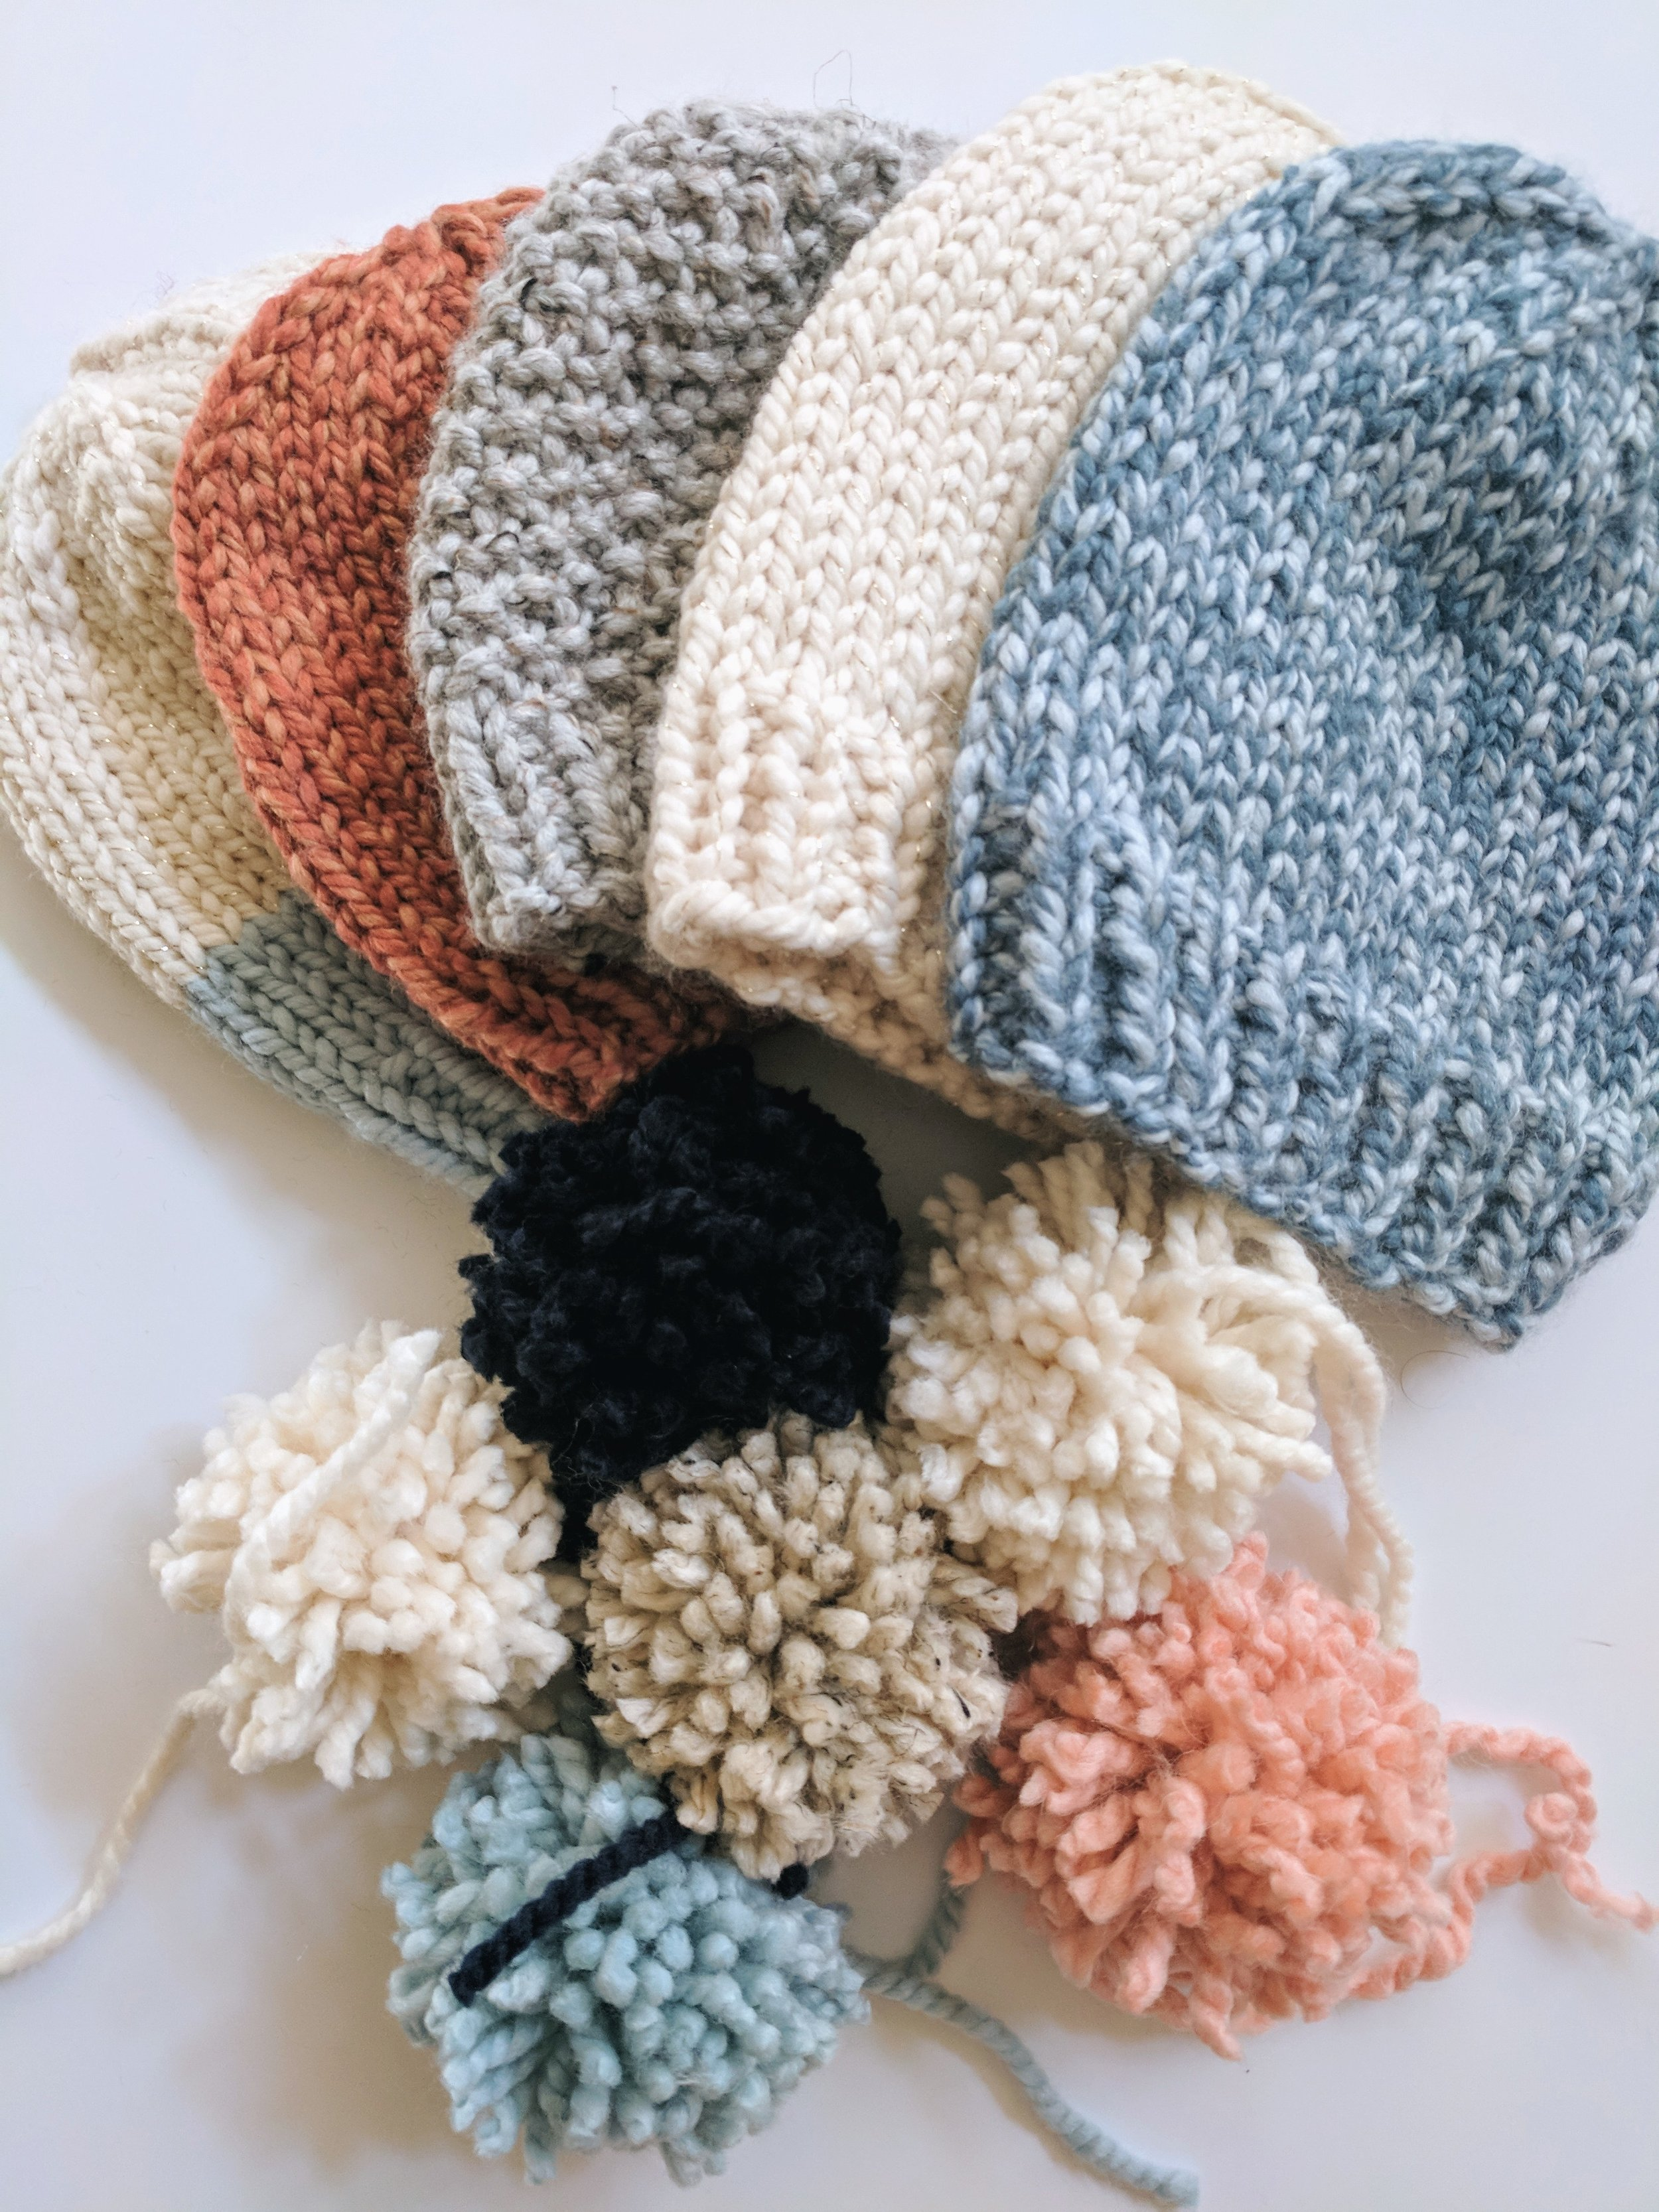 More hat designs + patterns are available for purchase  in my Etsy shop!